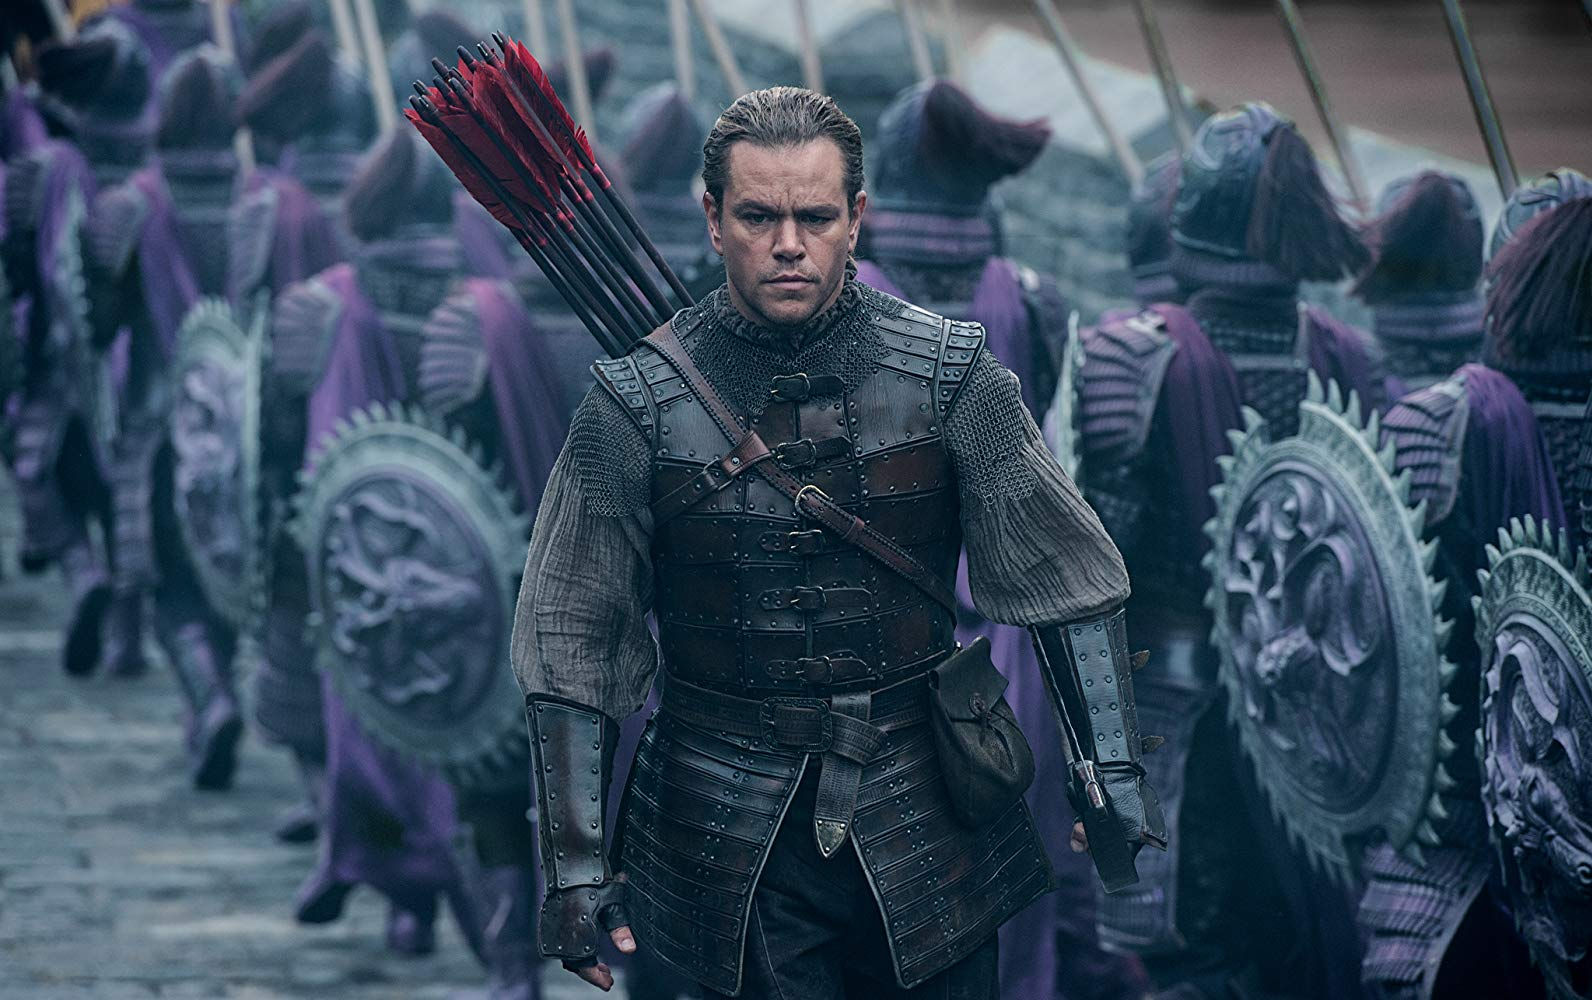 Matt Damon as a Westerner in dynastic China in The Great Wall (2016)